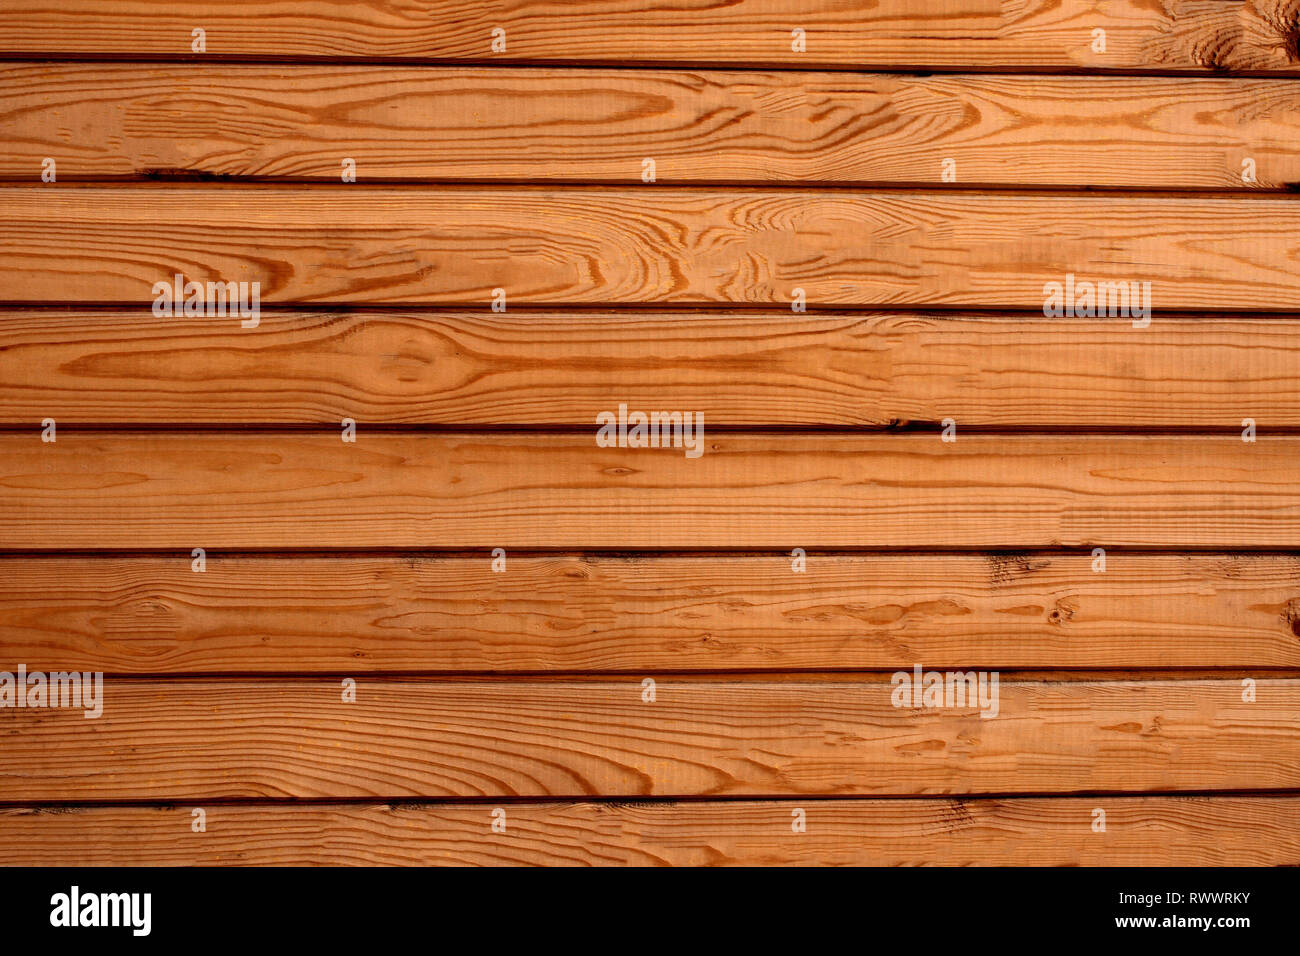 Vertical Wood Slat Wall Wooden Vertical Slats For Walls Stock Photos Wooden Vertical